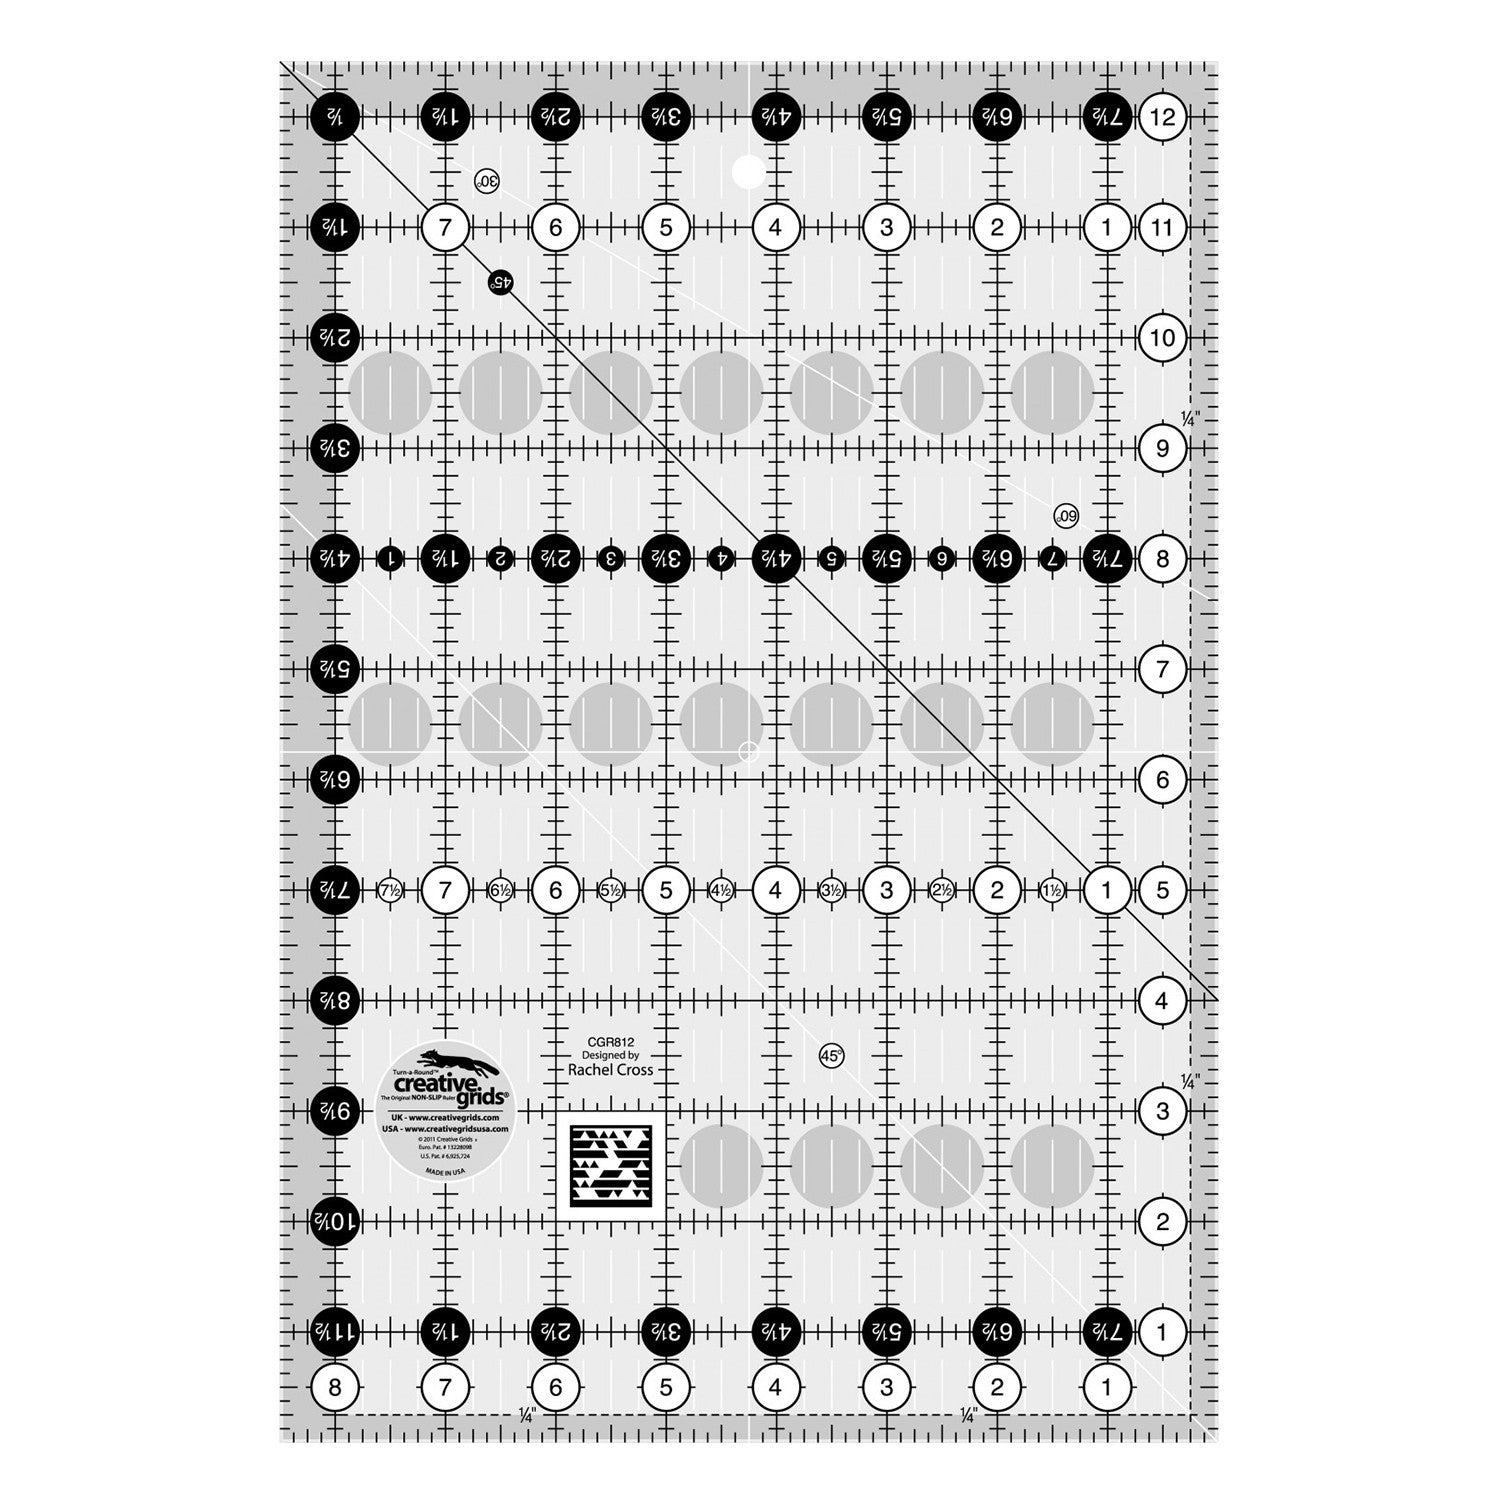 "Creative Grids Quilt Ruler - 8-1/2"" x 12-1/2"" Rectangle, New CGR812"